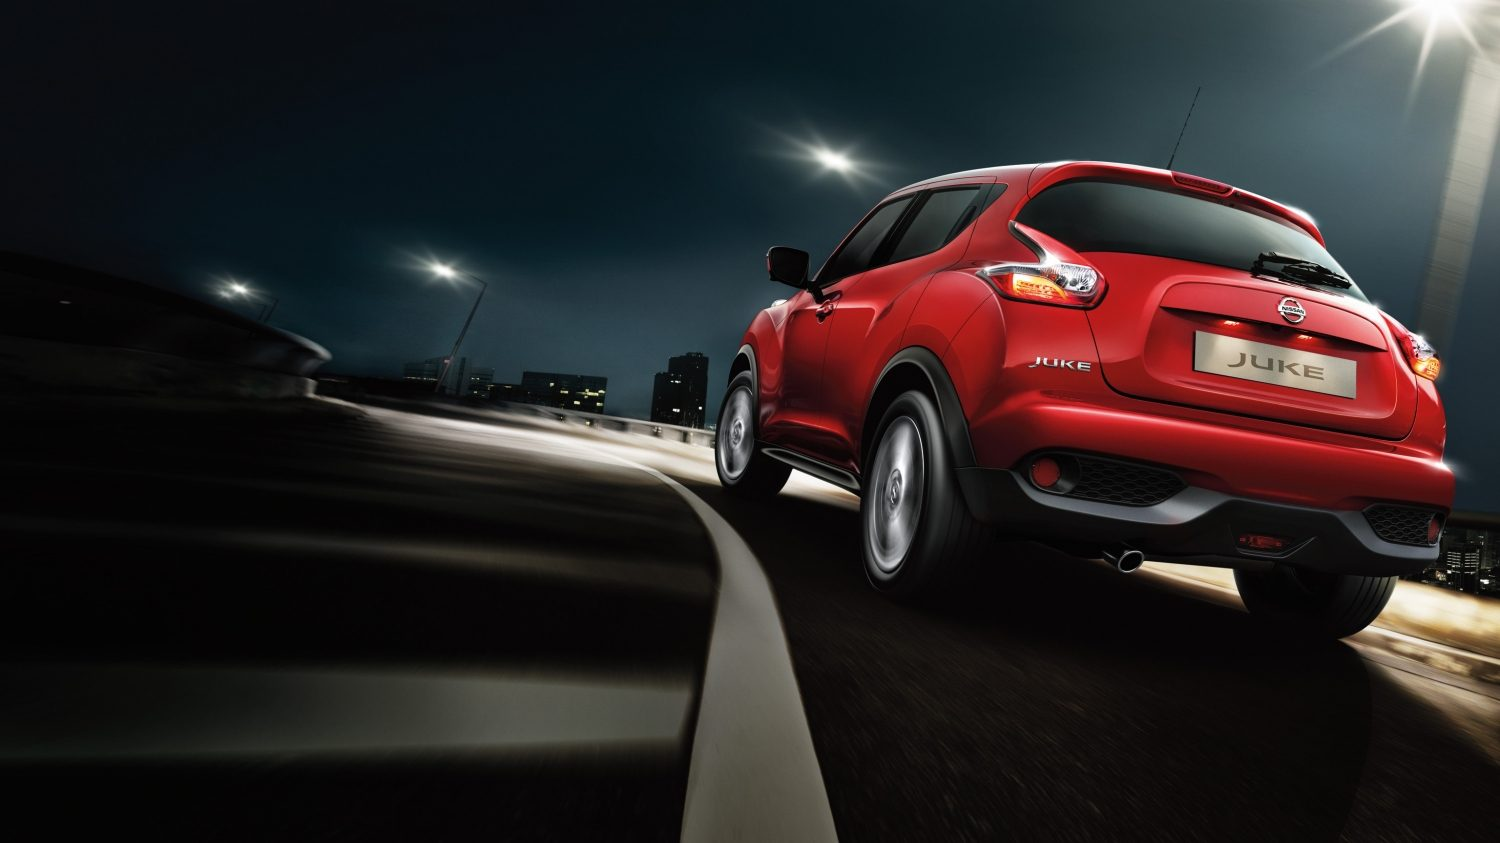 Nissan Juke dark red - compact crossover